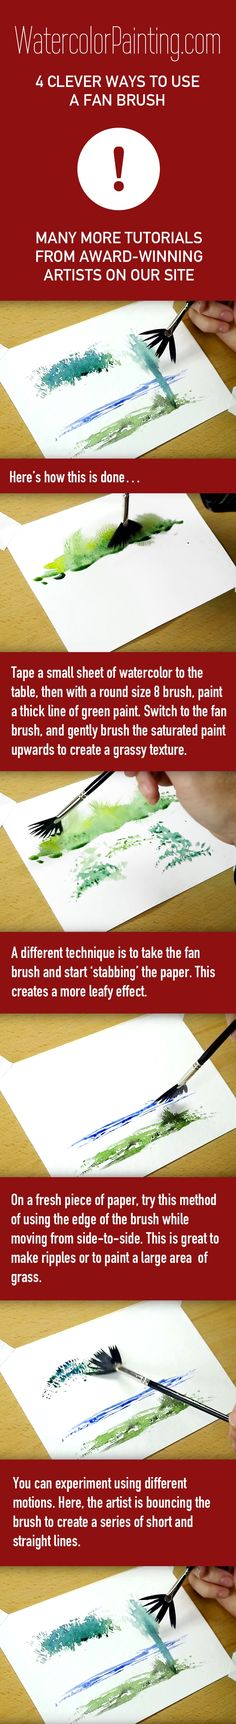 Your fan brush may become your new favorite brush after this tutorial! Close-up images explain 4 different watercolor techniques using a regular fan brush. Painting & Drawing, Watercolor Painting Techniques, Watercolor Tips, Watercolour Tutorials, Painting Lessons, Watercolour Painting, Art Lessons, Painting Tips, Fan Brush